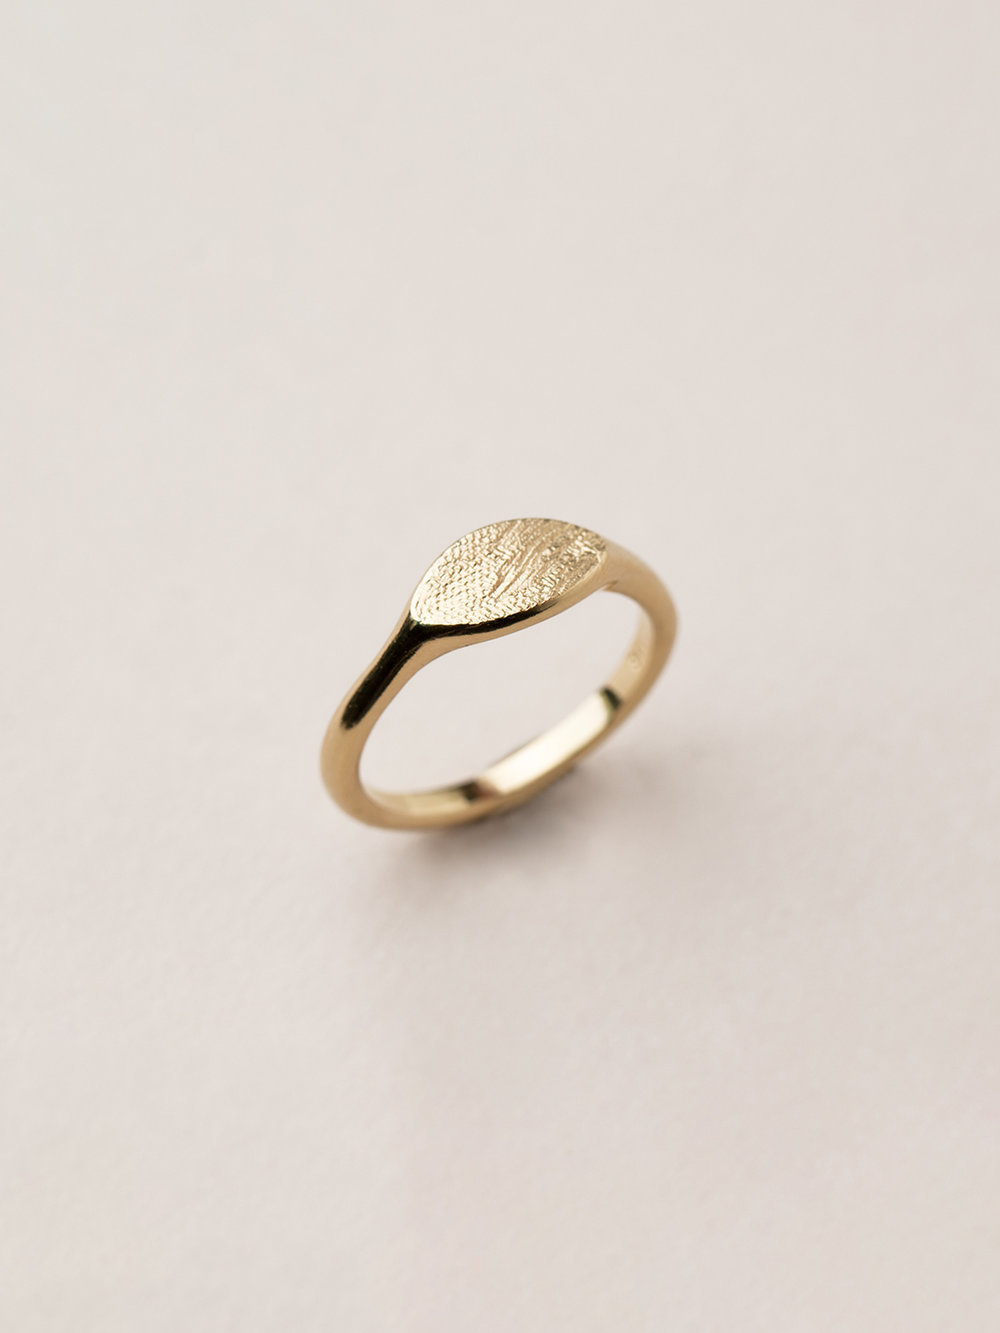 Breiter Amia Ring in 585 Gold  Signet ring Amia in 14kt gold